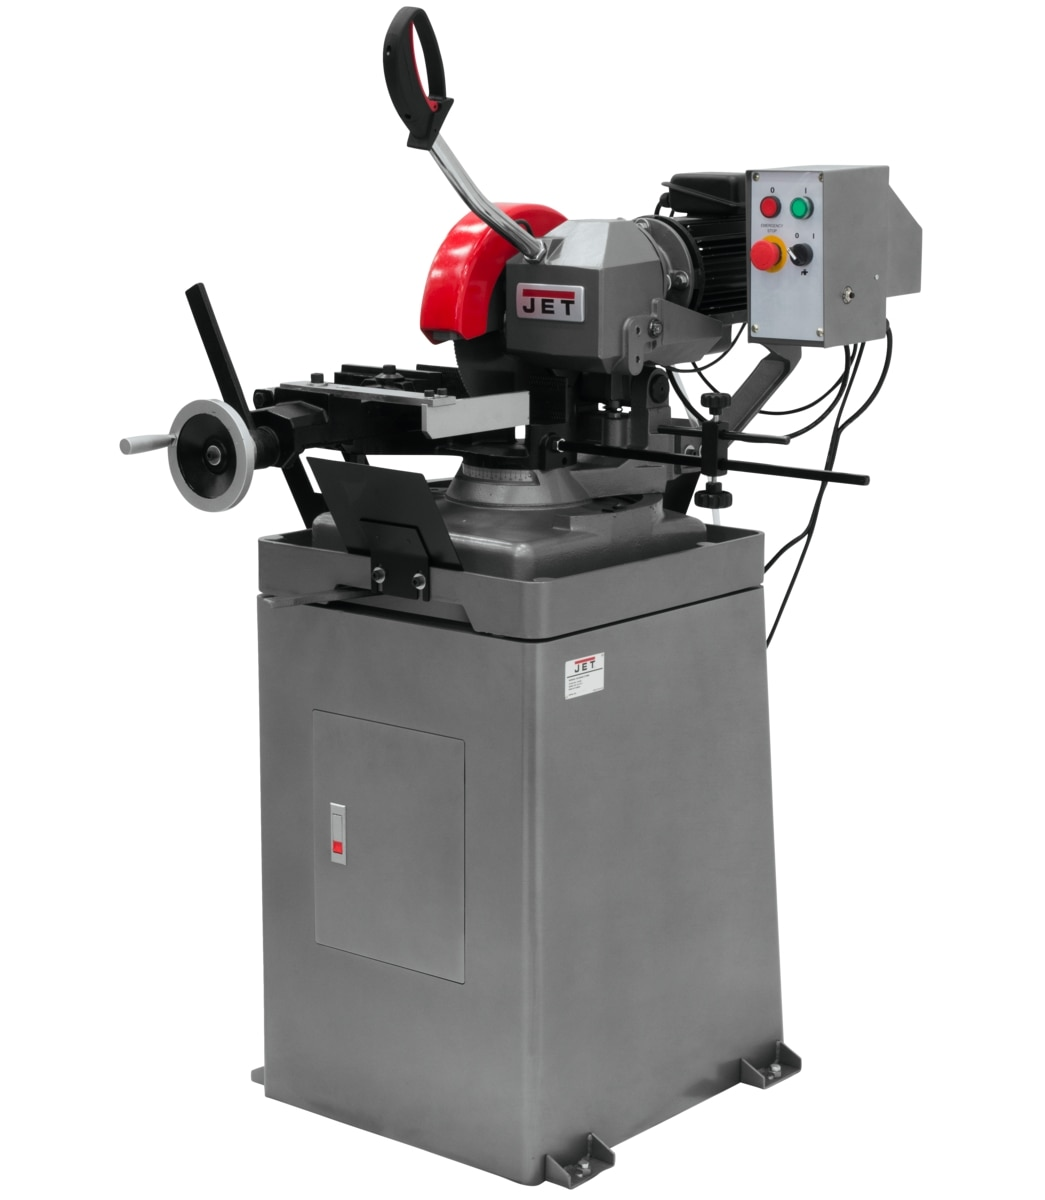 CS-275, 275mm 1-Phase Ferrous Manual Cold Saw